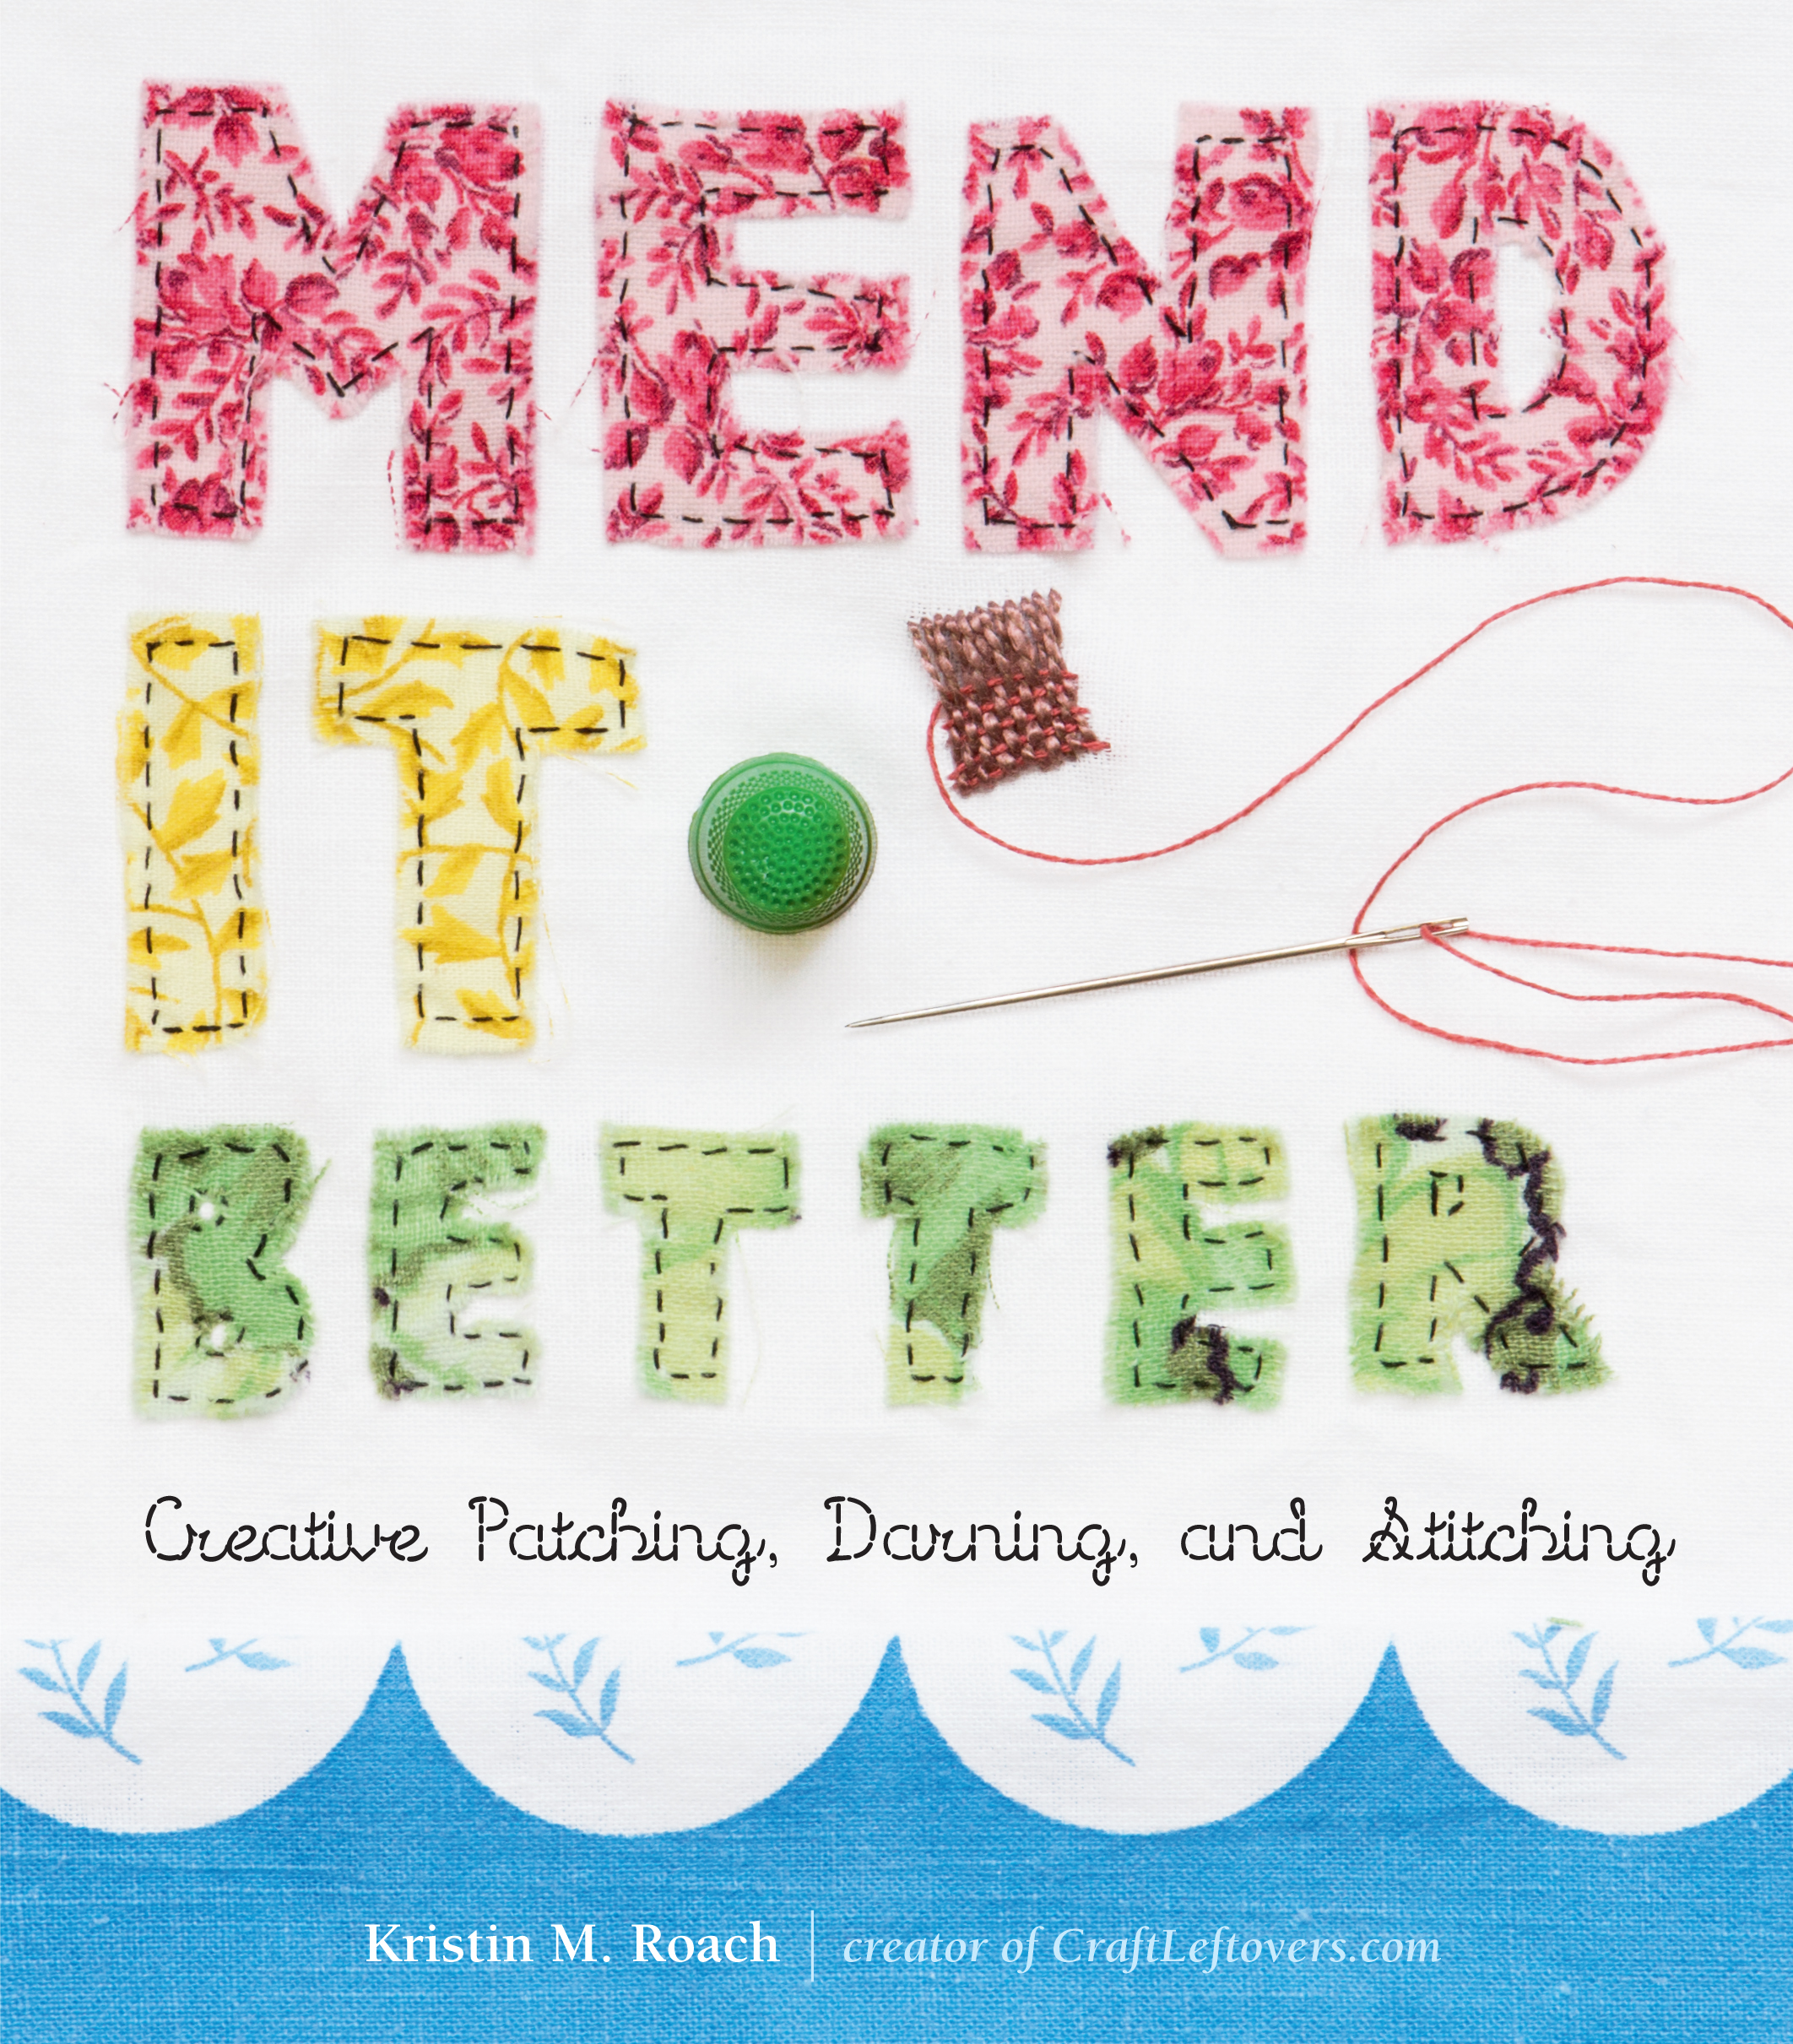 Mend It Better Creative Patching, Darning, and Stitching - Kristin M. Roach